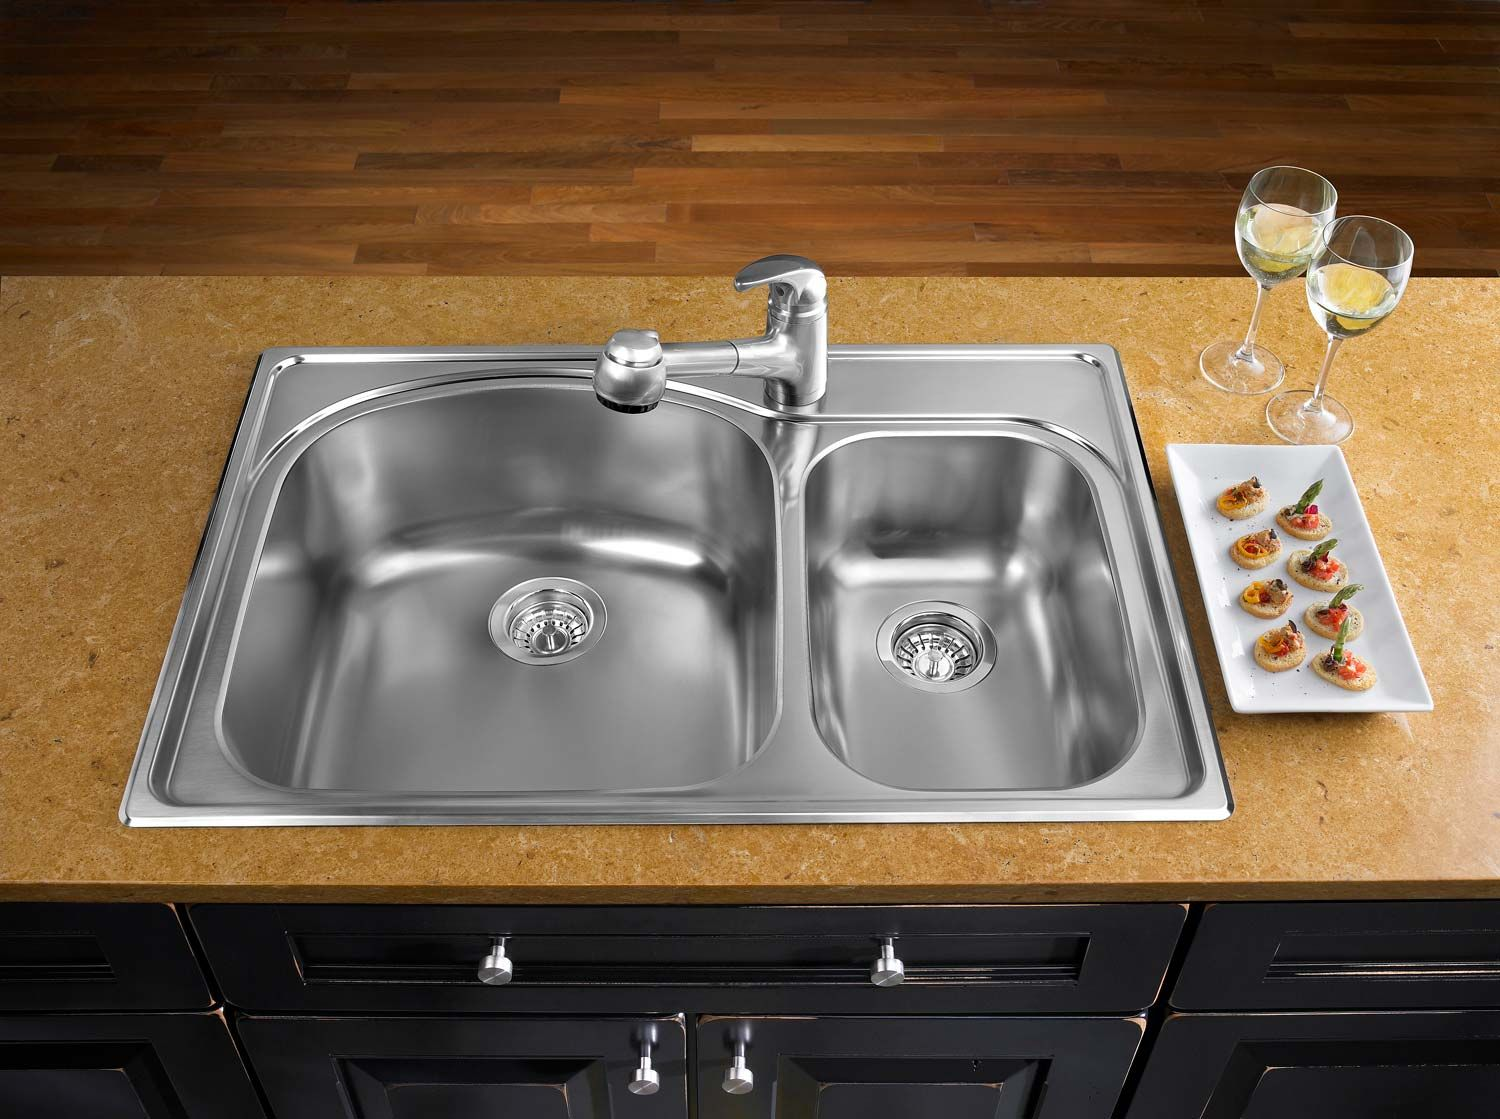 view of a stainless steel sink